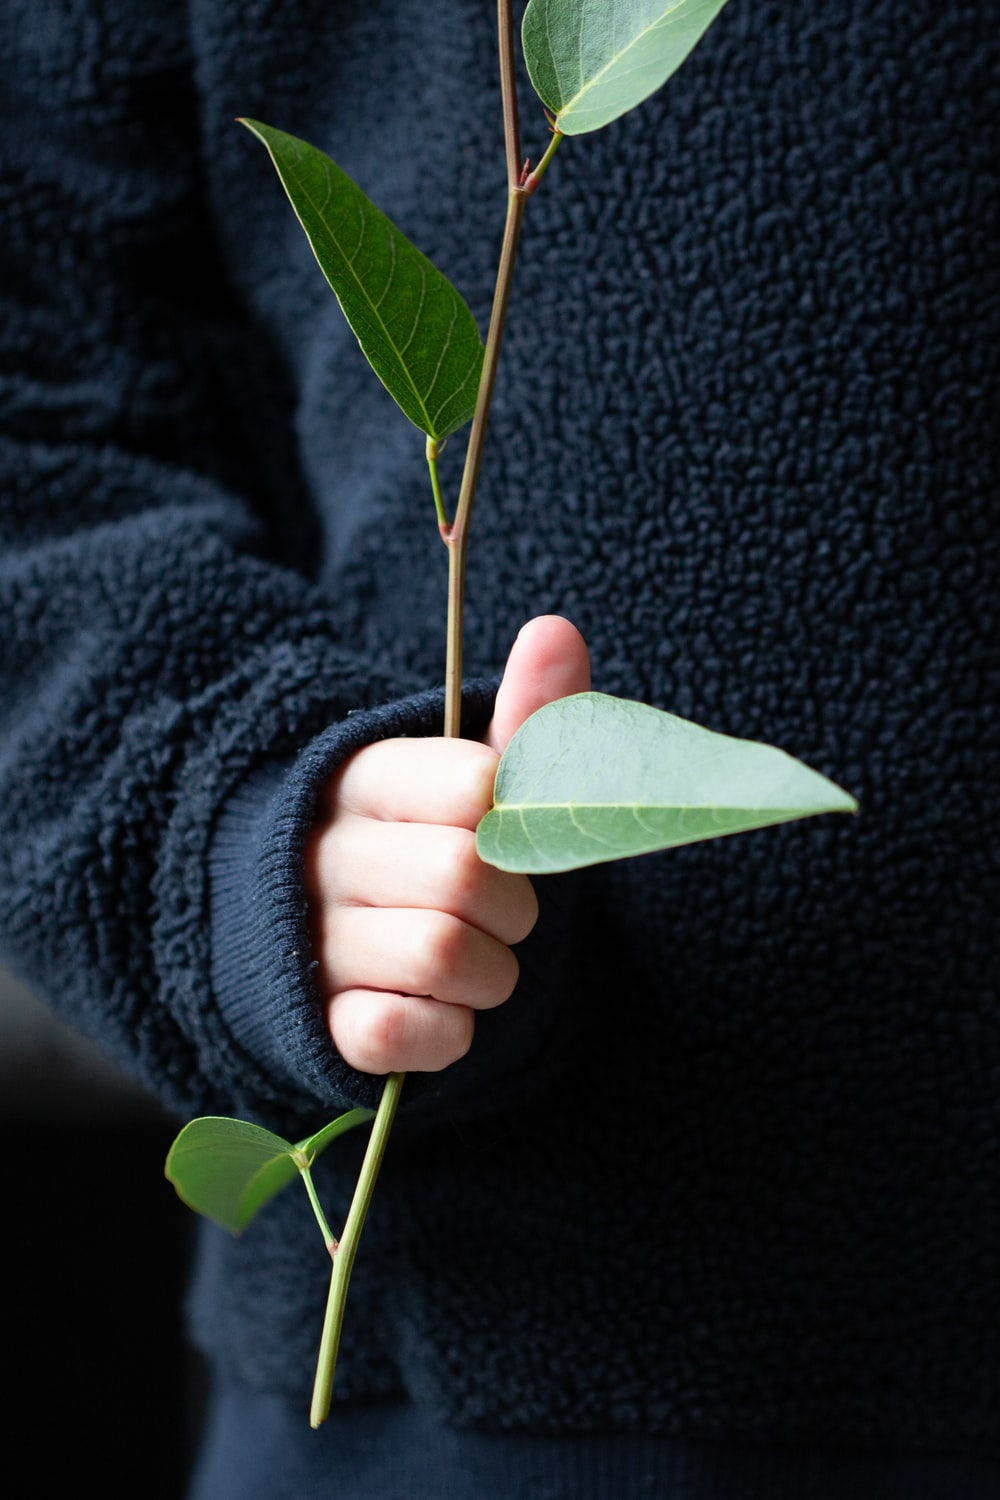 person holding green leaf on black textile